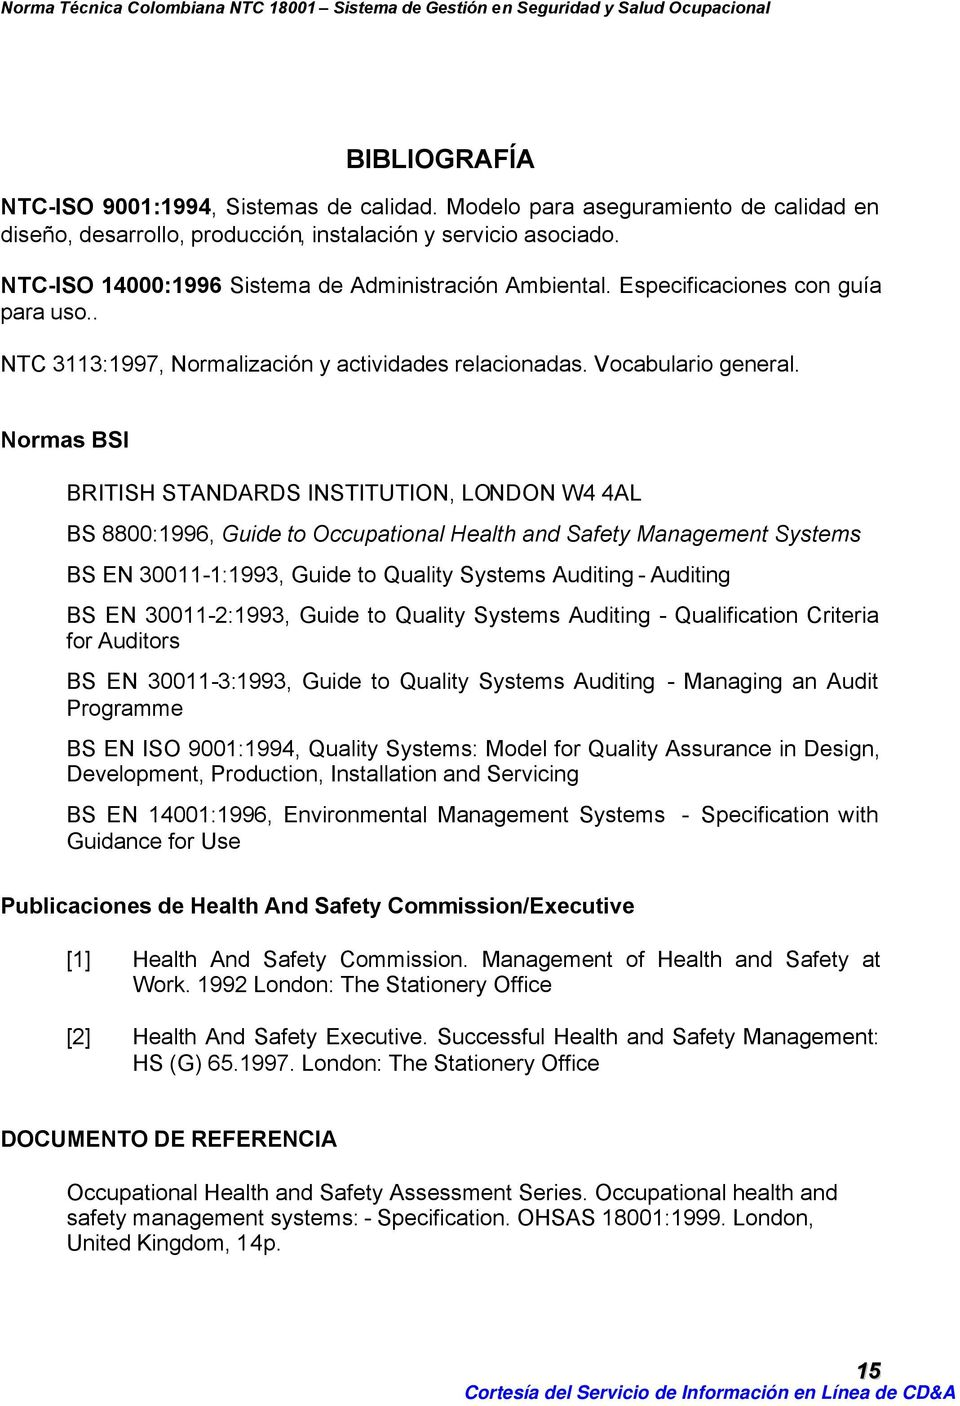 Normas BSI BRITISH STANDARDS INSTITUTION, LONDON W4 4AL BS 8800:1996, Guide to Occupational Health and Safety Management Systems BS EN 30011-1:1993, Guide to Quality Systems Auditing - Auditing BS EN